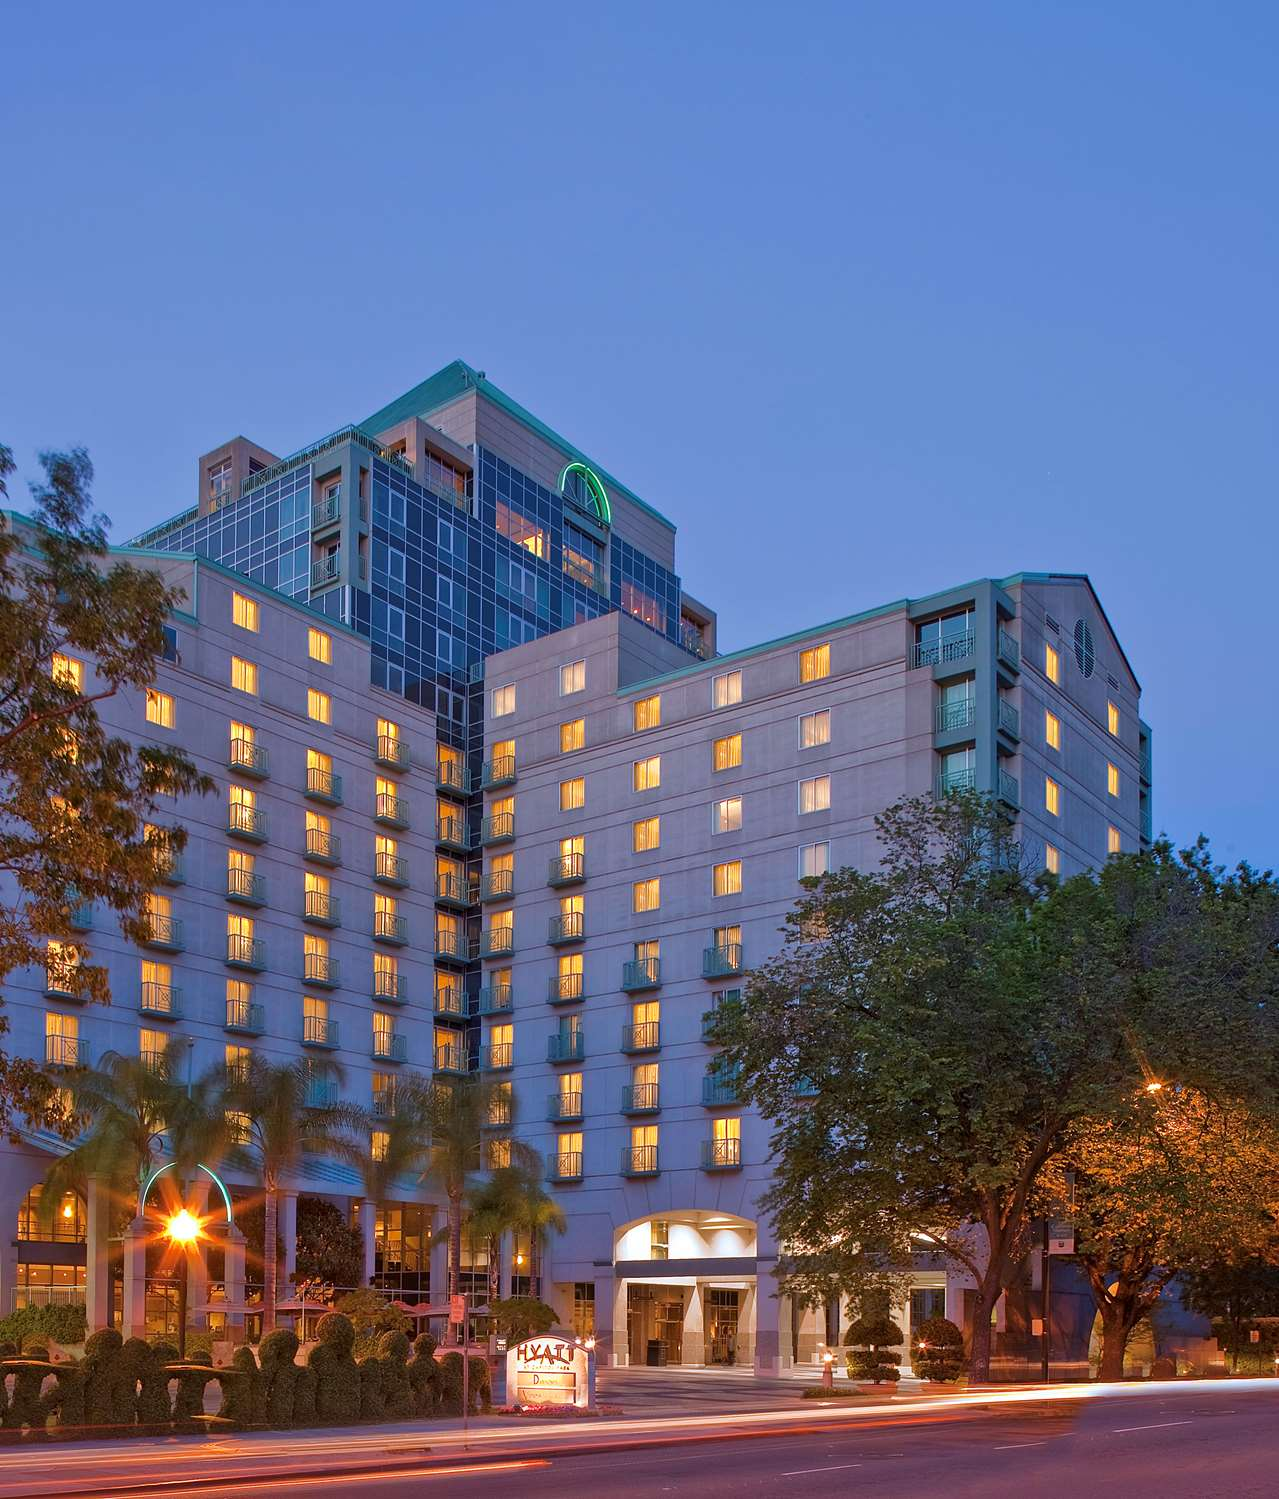 Hyatt Regency Hotel Sacramento